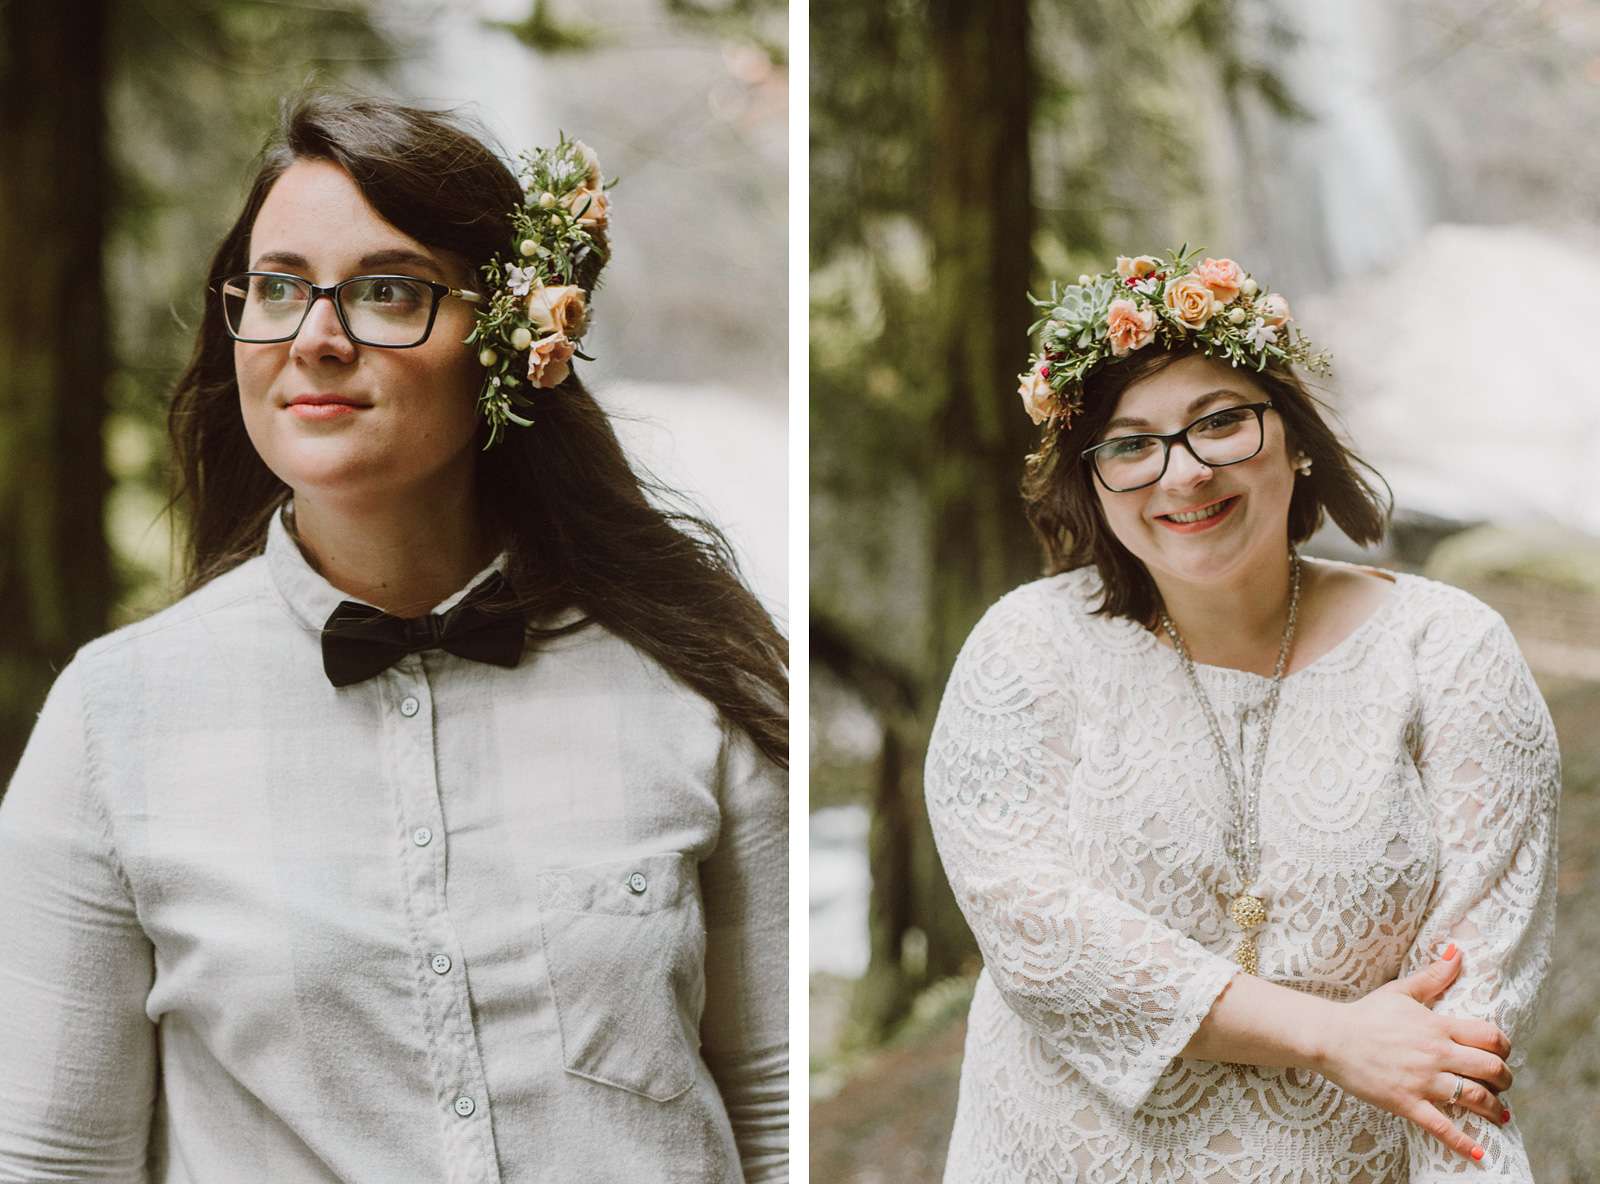 Portraits of the brides at a Portland waterfall elopement